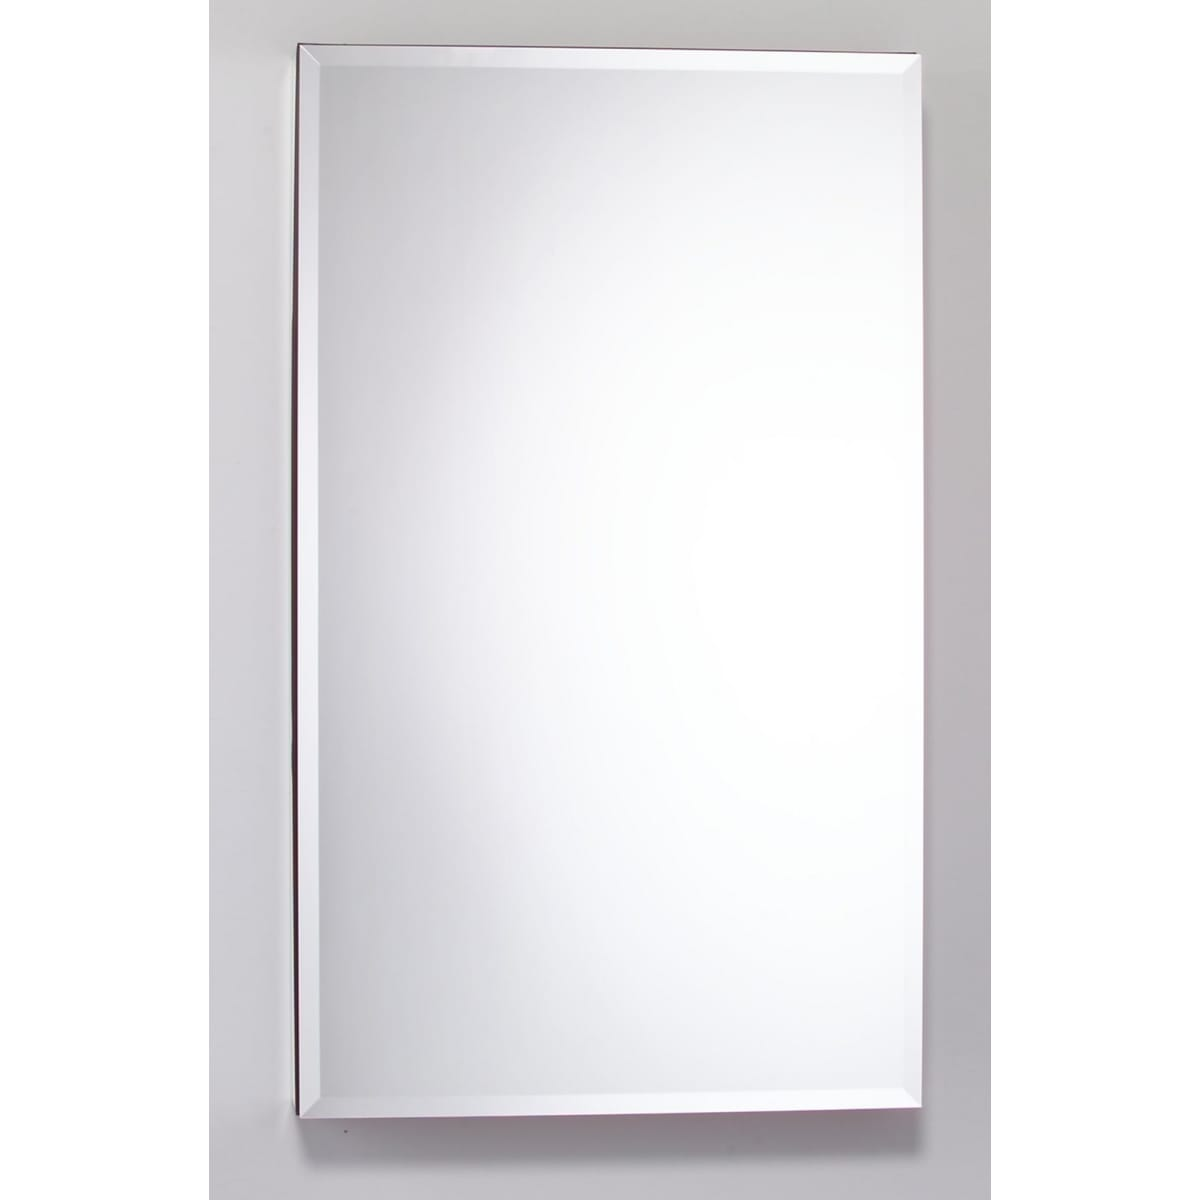 Robern Mc1630d426le2 Matte White 30 X 15 1 4 Lighted Frameless